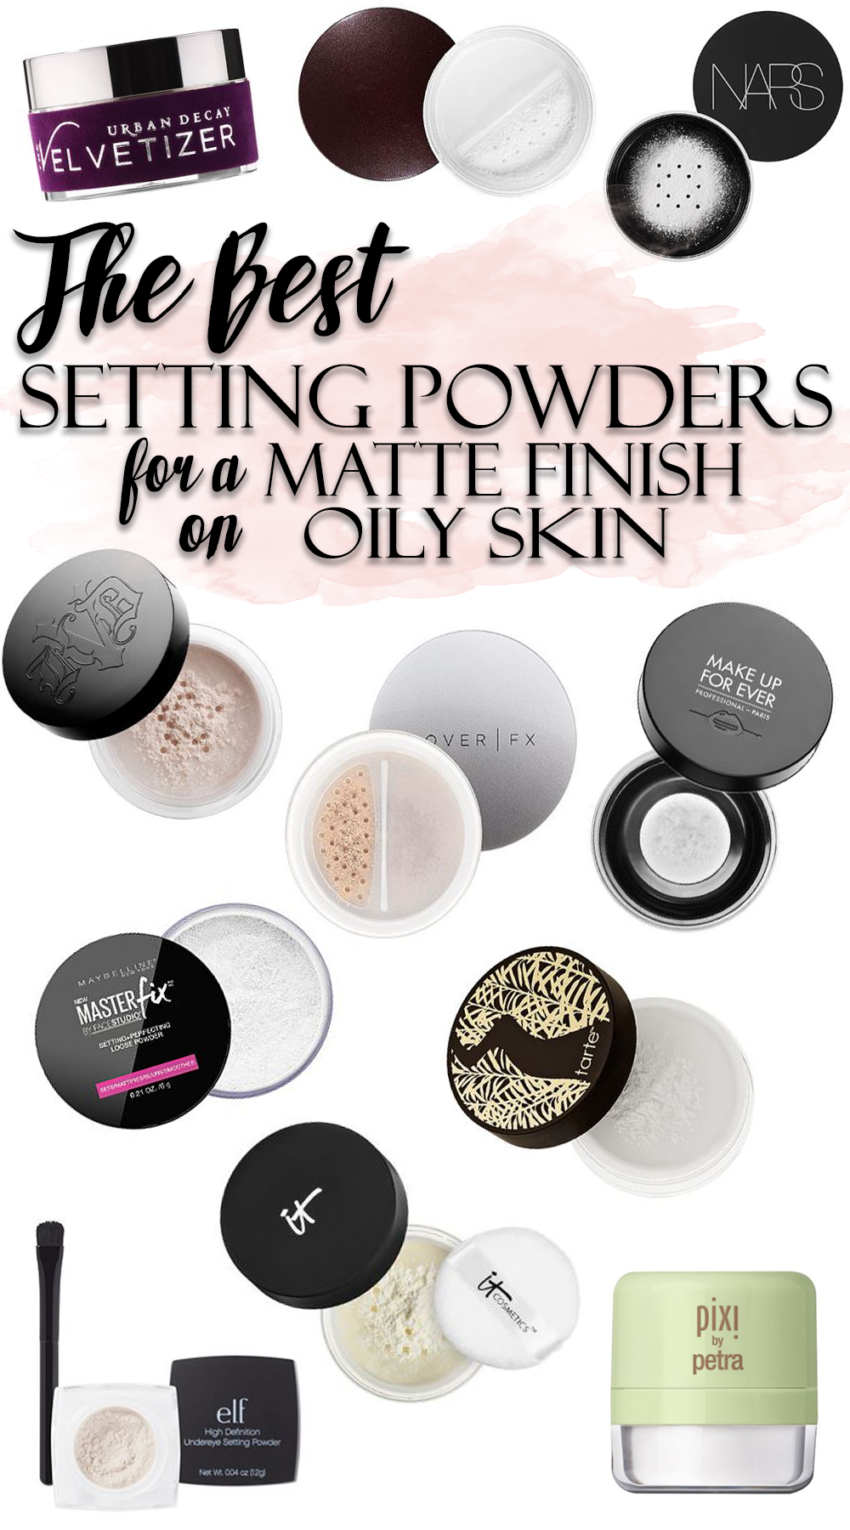 The BEST Makeup Setting Powders for Oily Skin Makeup